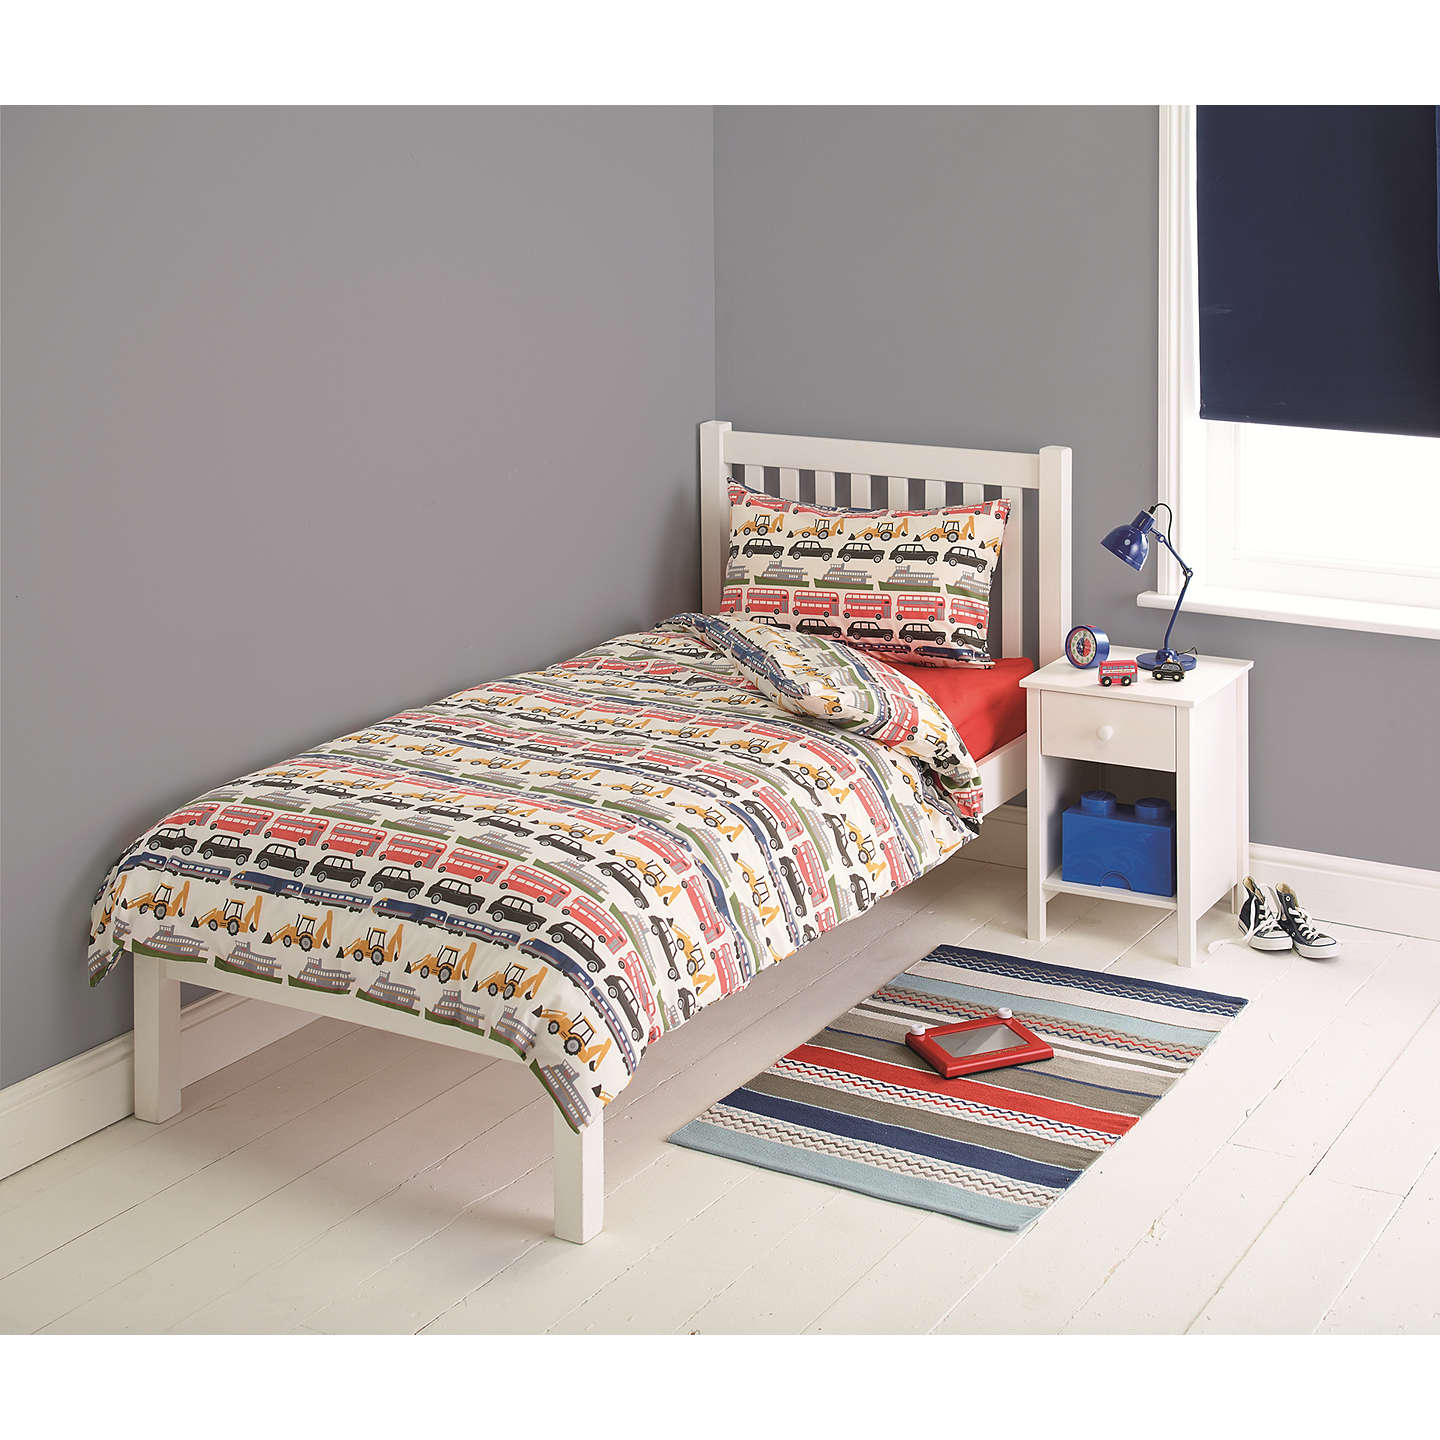 Little Home At John Lewis On The Move Duvet Cover And Pillowcase Set Single Online